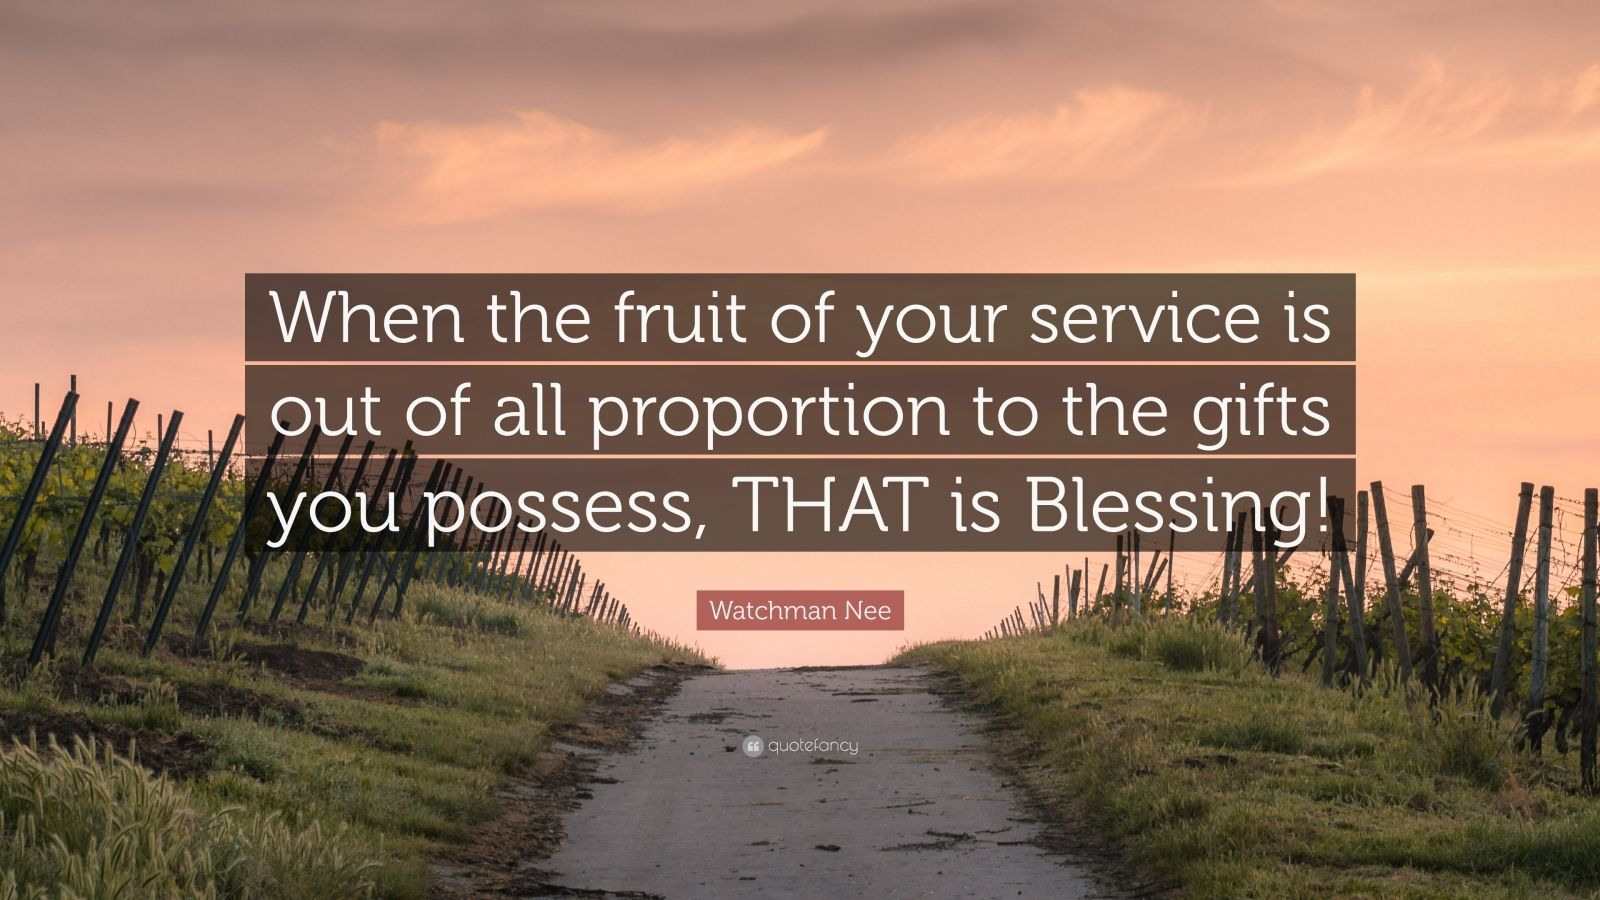 """Watchman Nee Quote: """"When the fruit of your service is out of all proportion to the gifts you possess, THAT is Blessing!"""""""